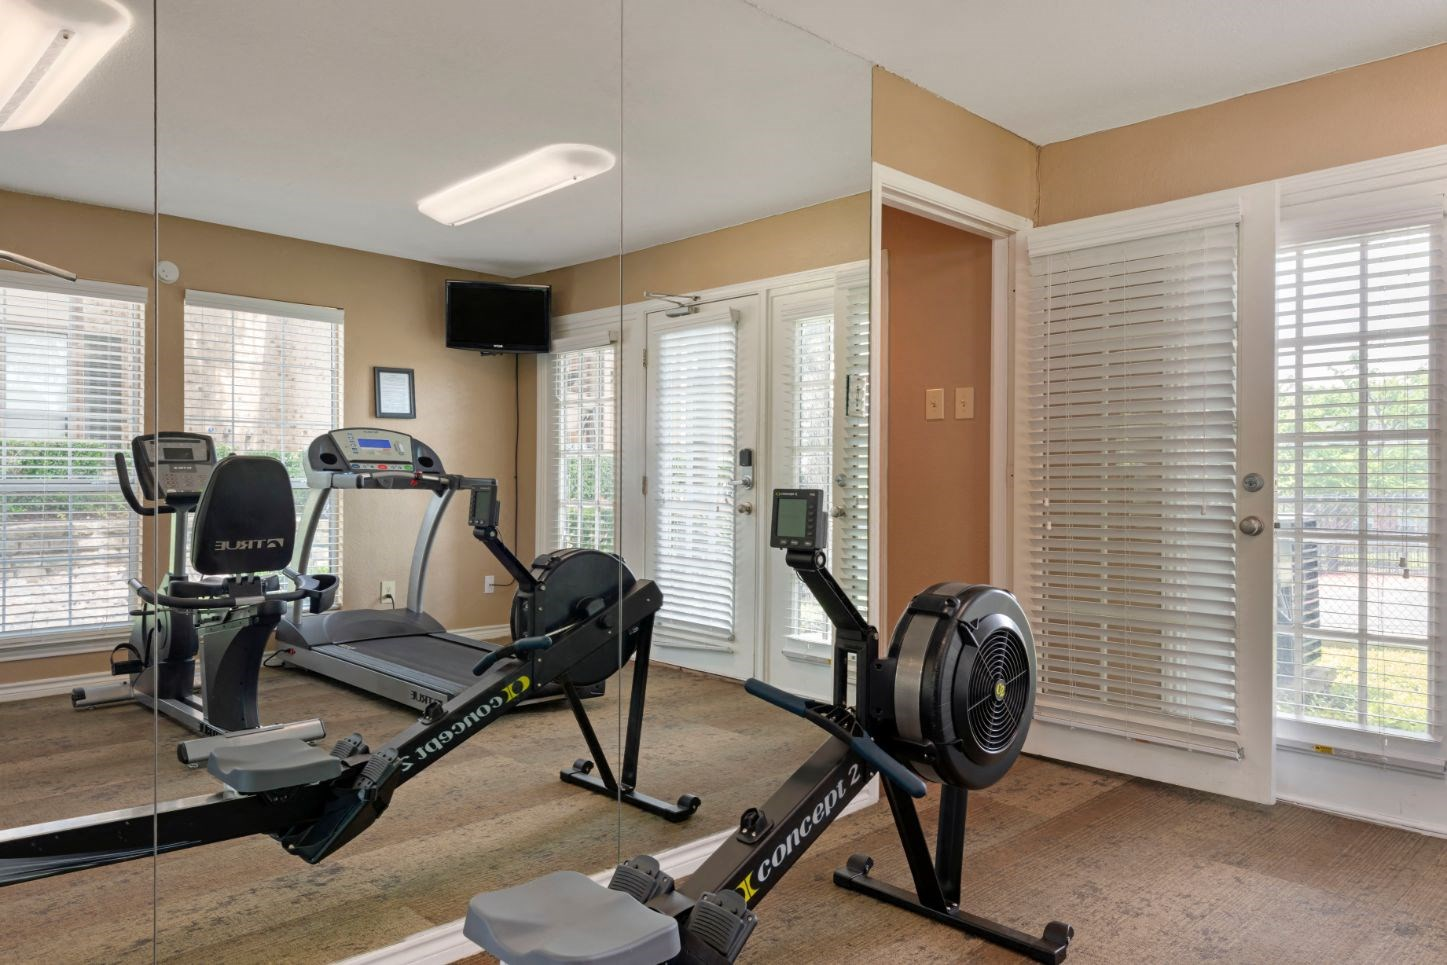 Rowing stations in the Fitness Center and a tv mounted on the wall